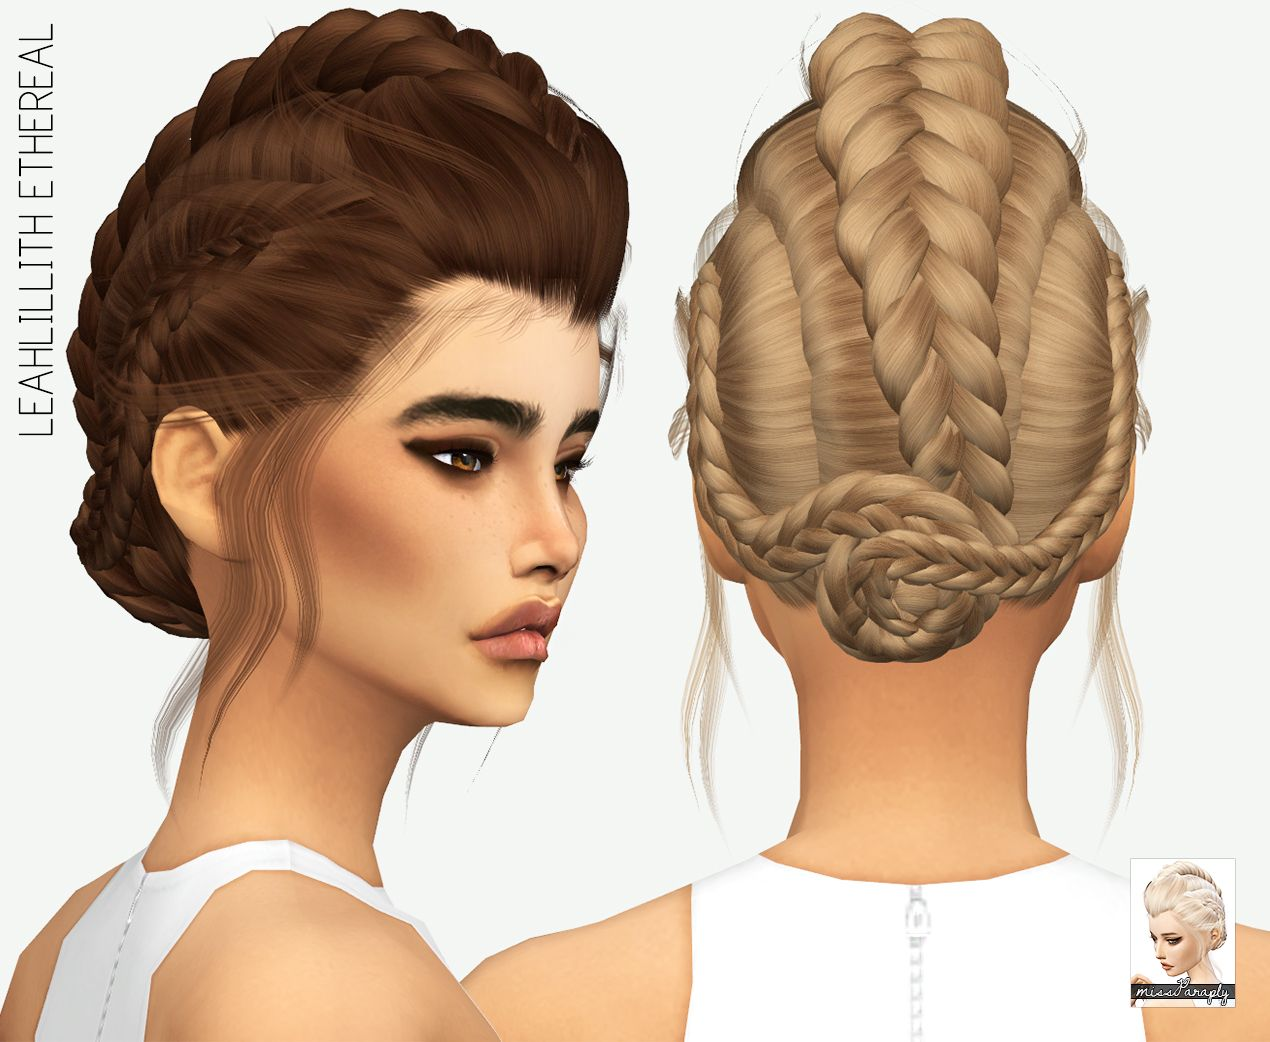 Miss Paraply: LeahLillith Etheral hair retextured  - Sims 4 Hairs - http://sims4hairs.com/miss-paraply-leahlillith-etheral-hair-retextured/